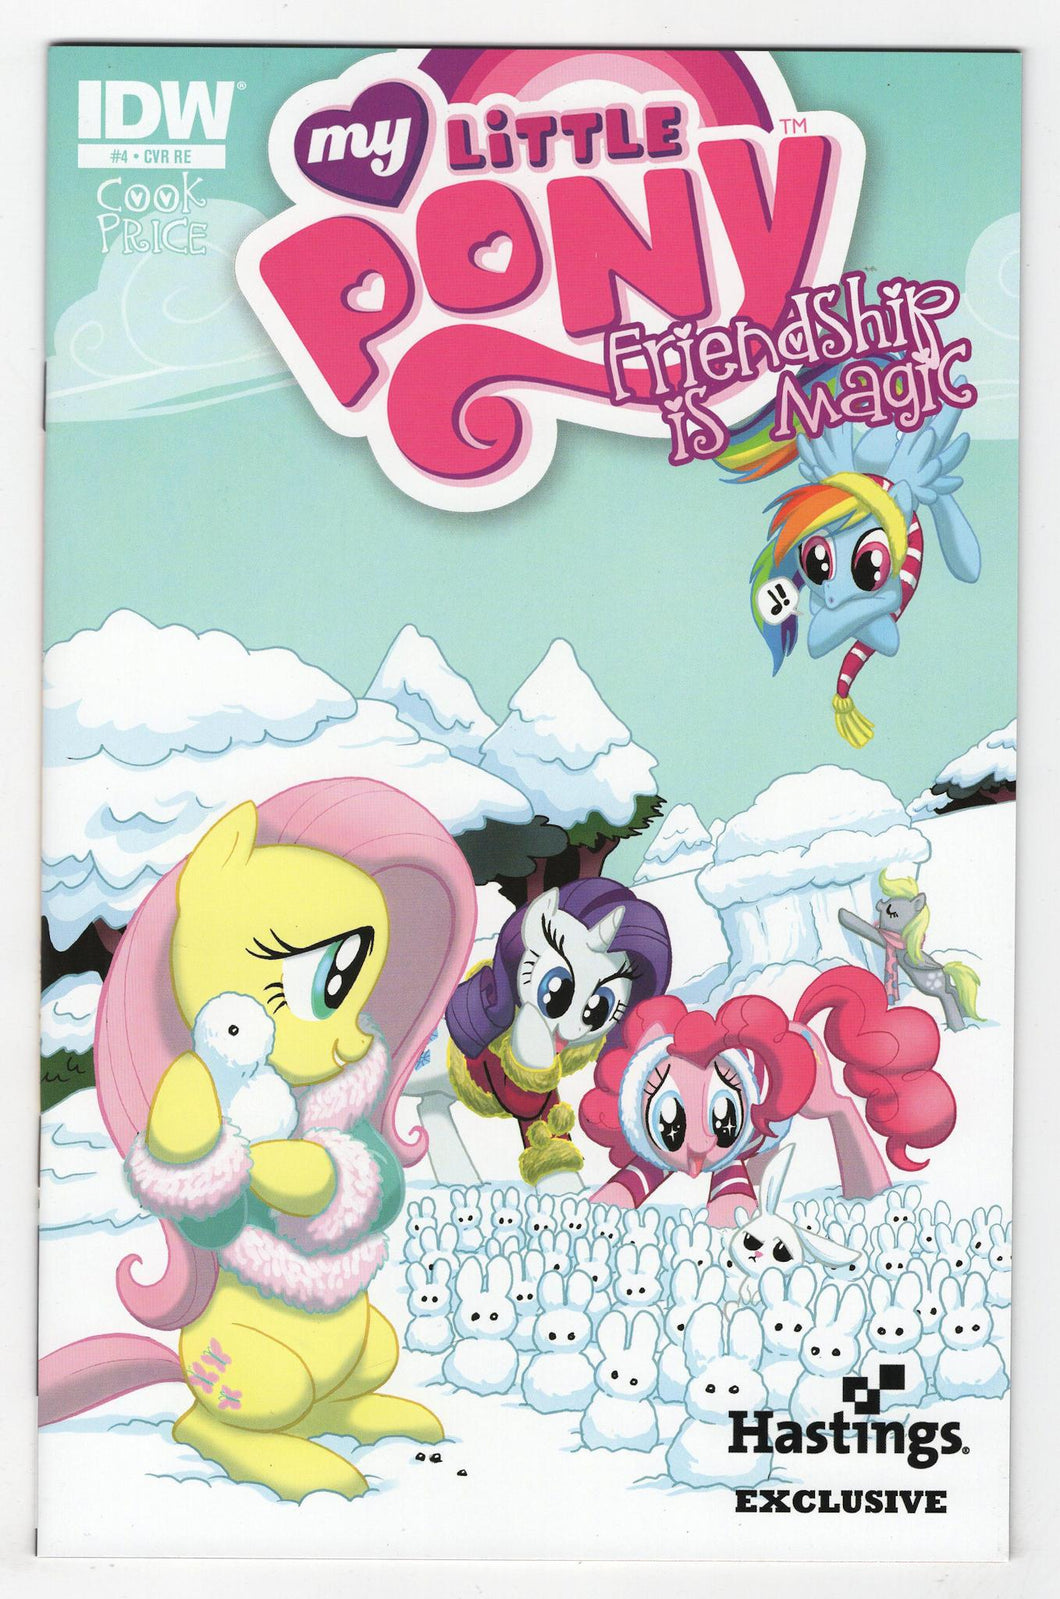 My Little Pony Friendship is Magic #4 Hastings Variant Cover Front